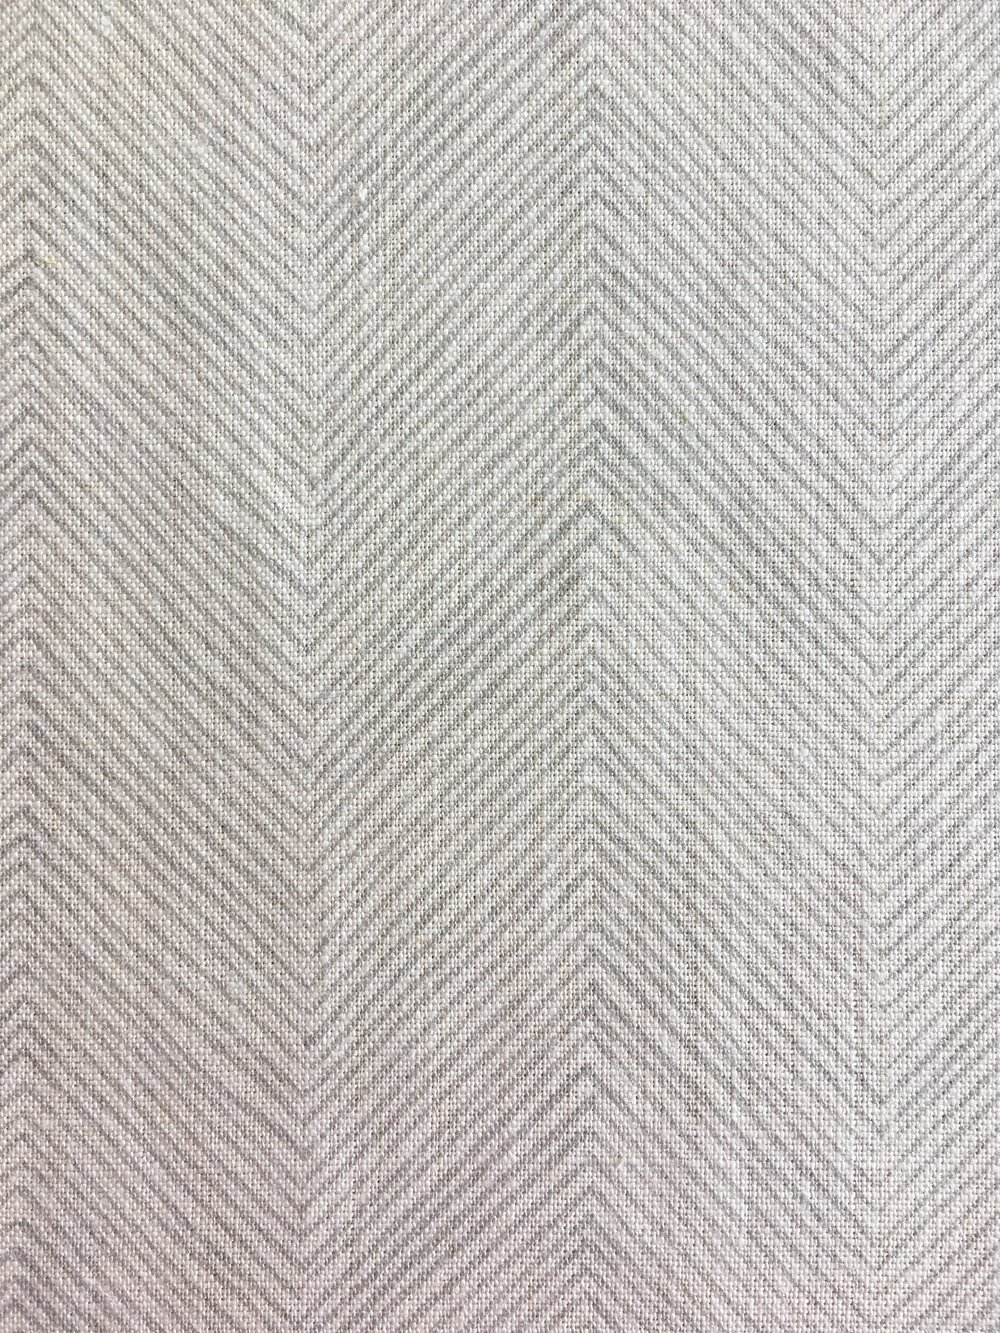 herringbone Swedish grey